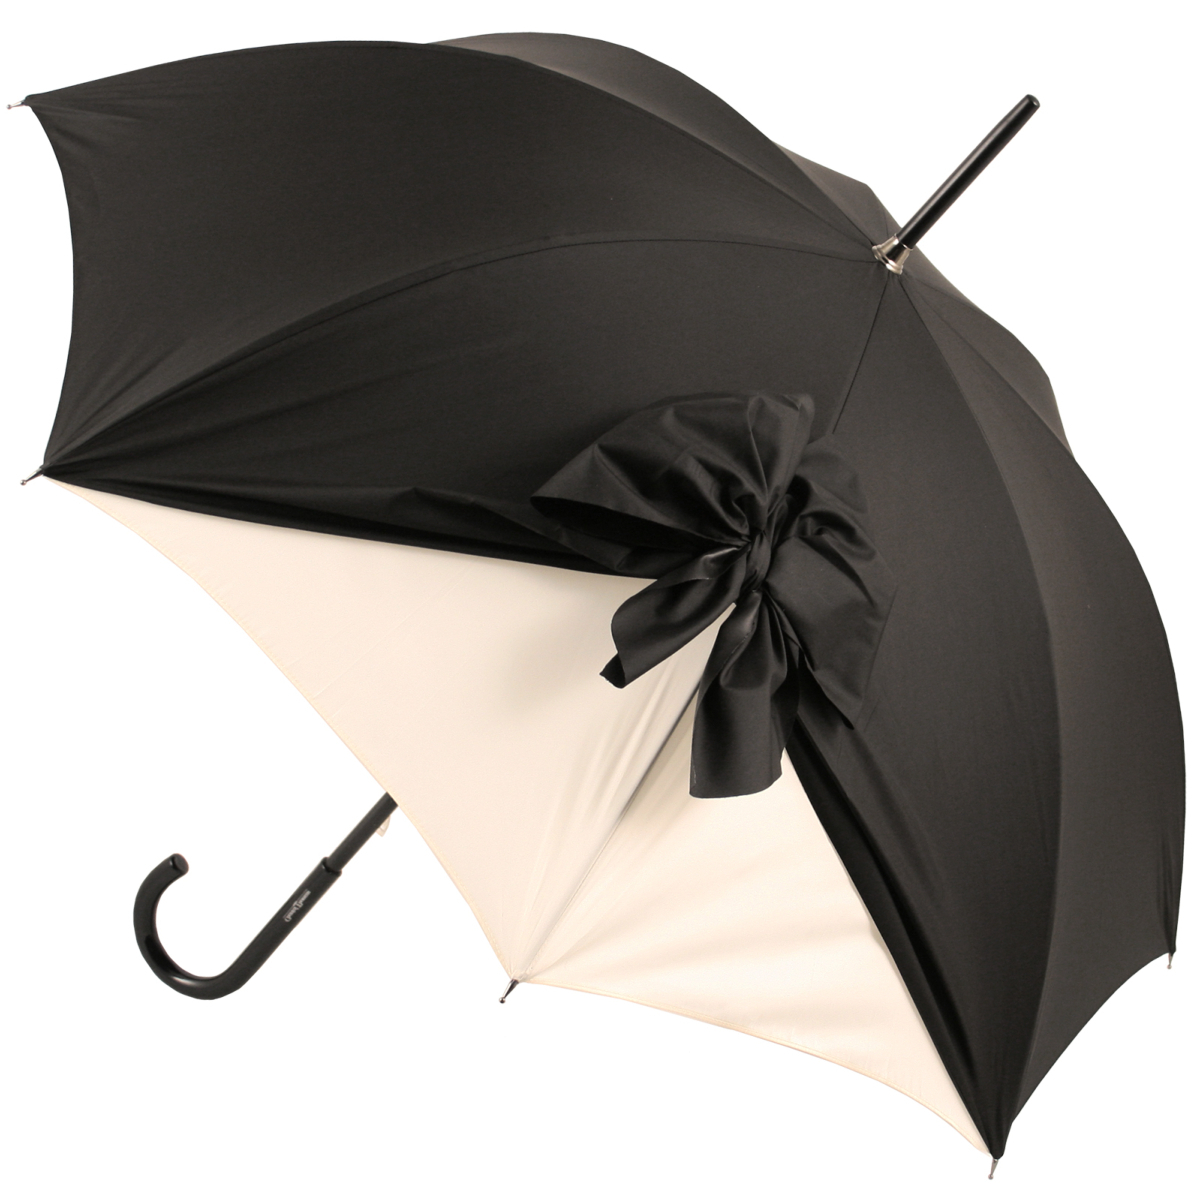 Drape Umbrella In Black And Creamchantal Thomass Throughout Popular Drape Umbrellas (View 6 of 20)